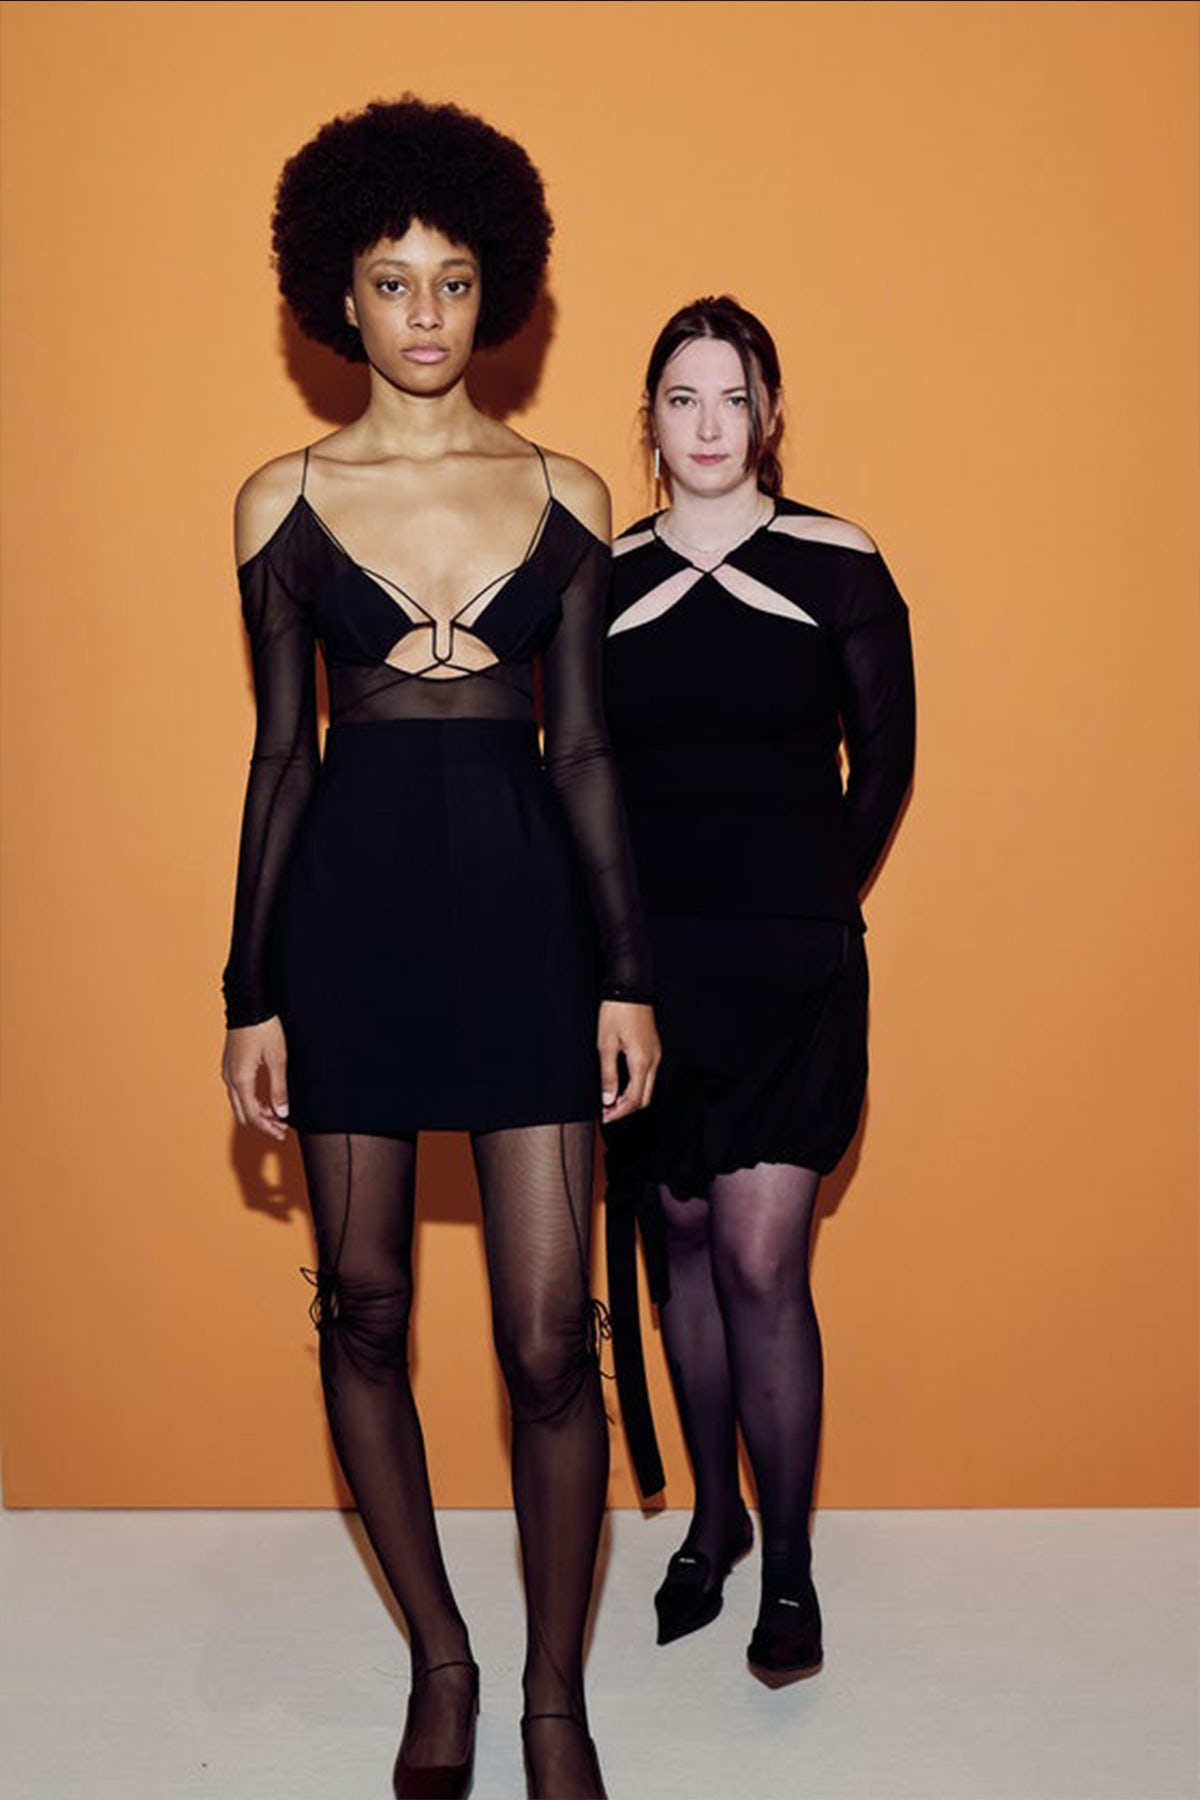 Nensi Dojaka (right) at the LVMH Prize event alongside a model sporting her Autumn/Winter 2021 collection. LVMH.